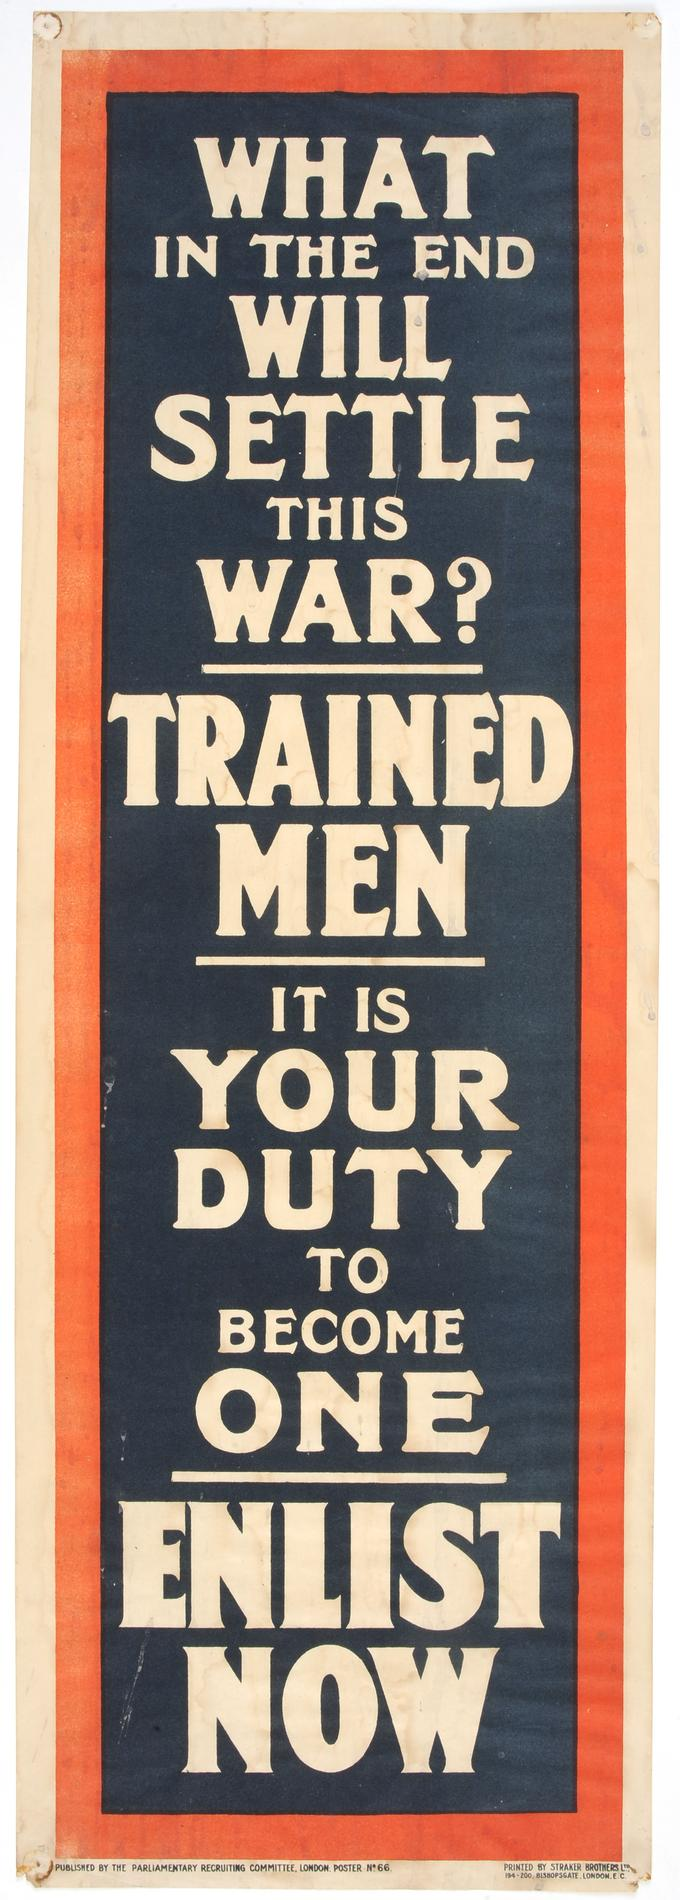 What in the end will settle this war? Trained men. It is your duty to become one. Enlist now (Poster)